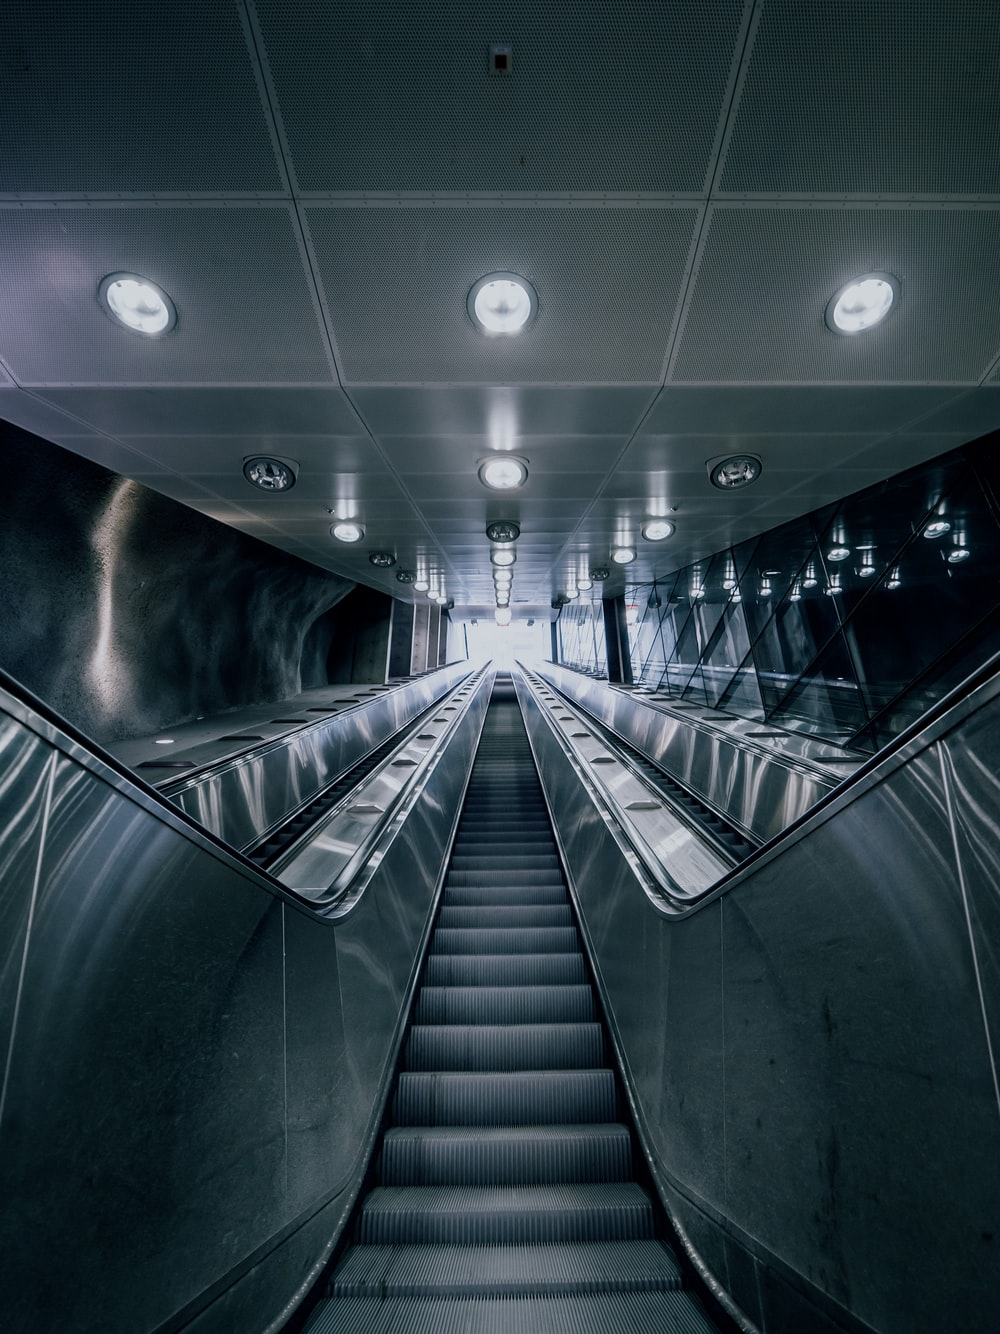 gray and black escalator in a building